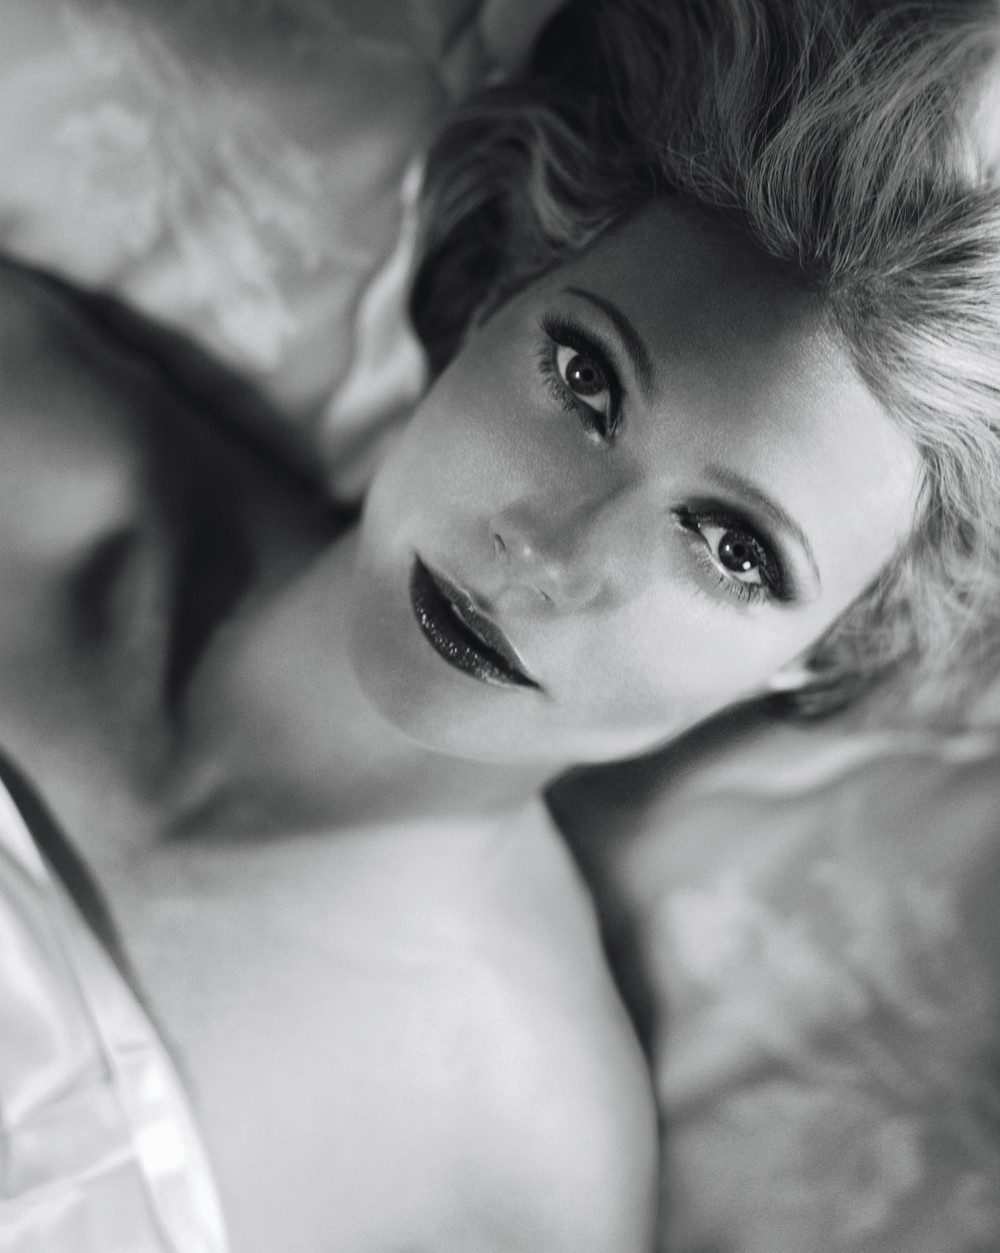 22823-1382453735-Gwyneth Paltrow by Vincent Peters.jpeg